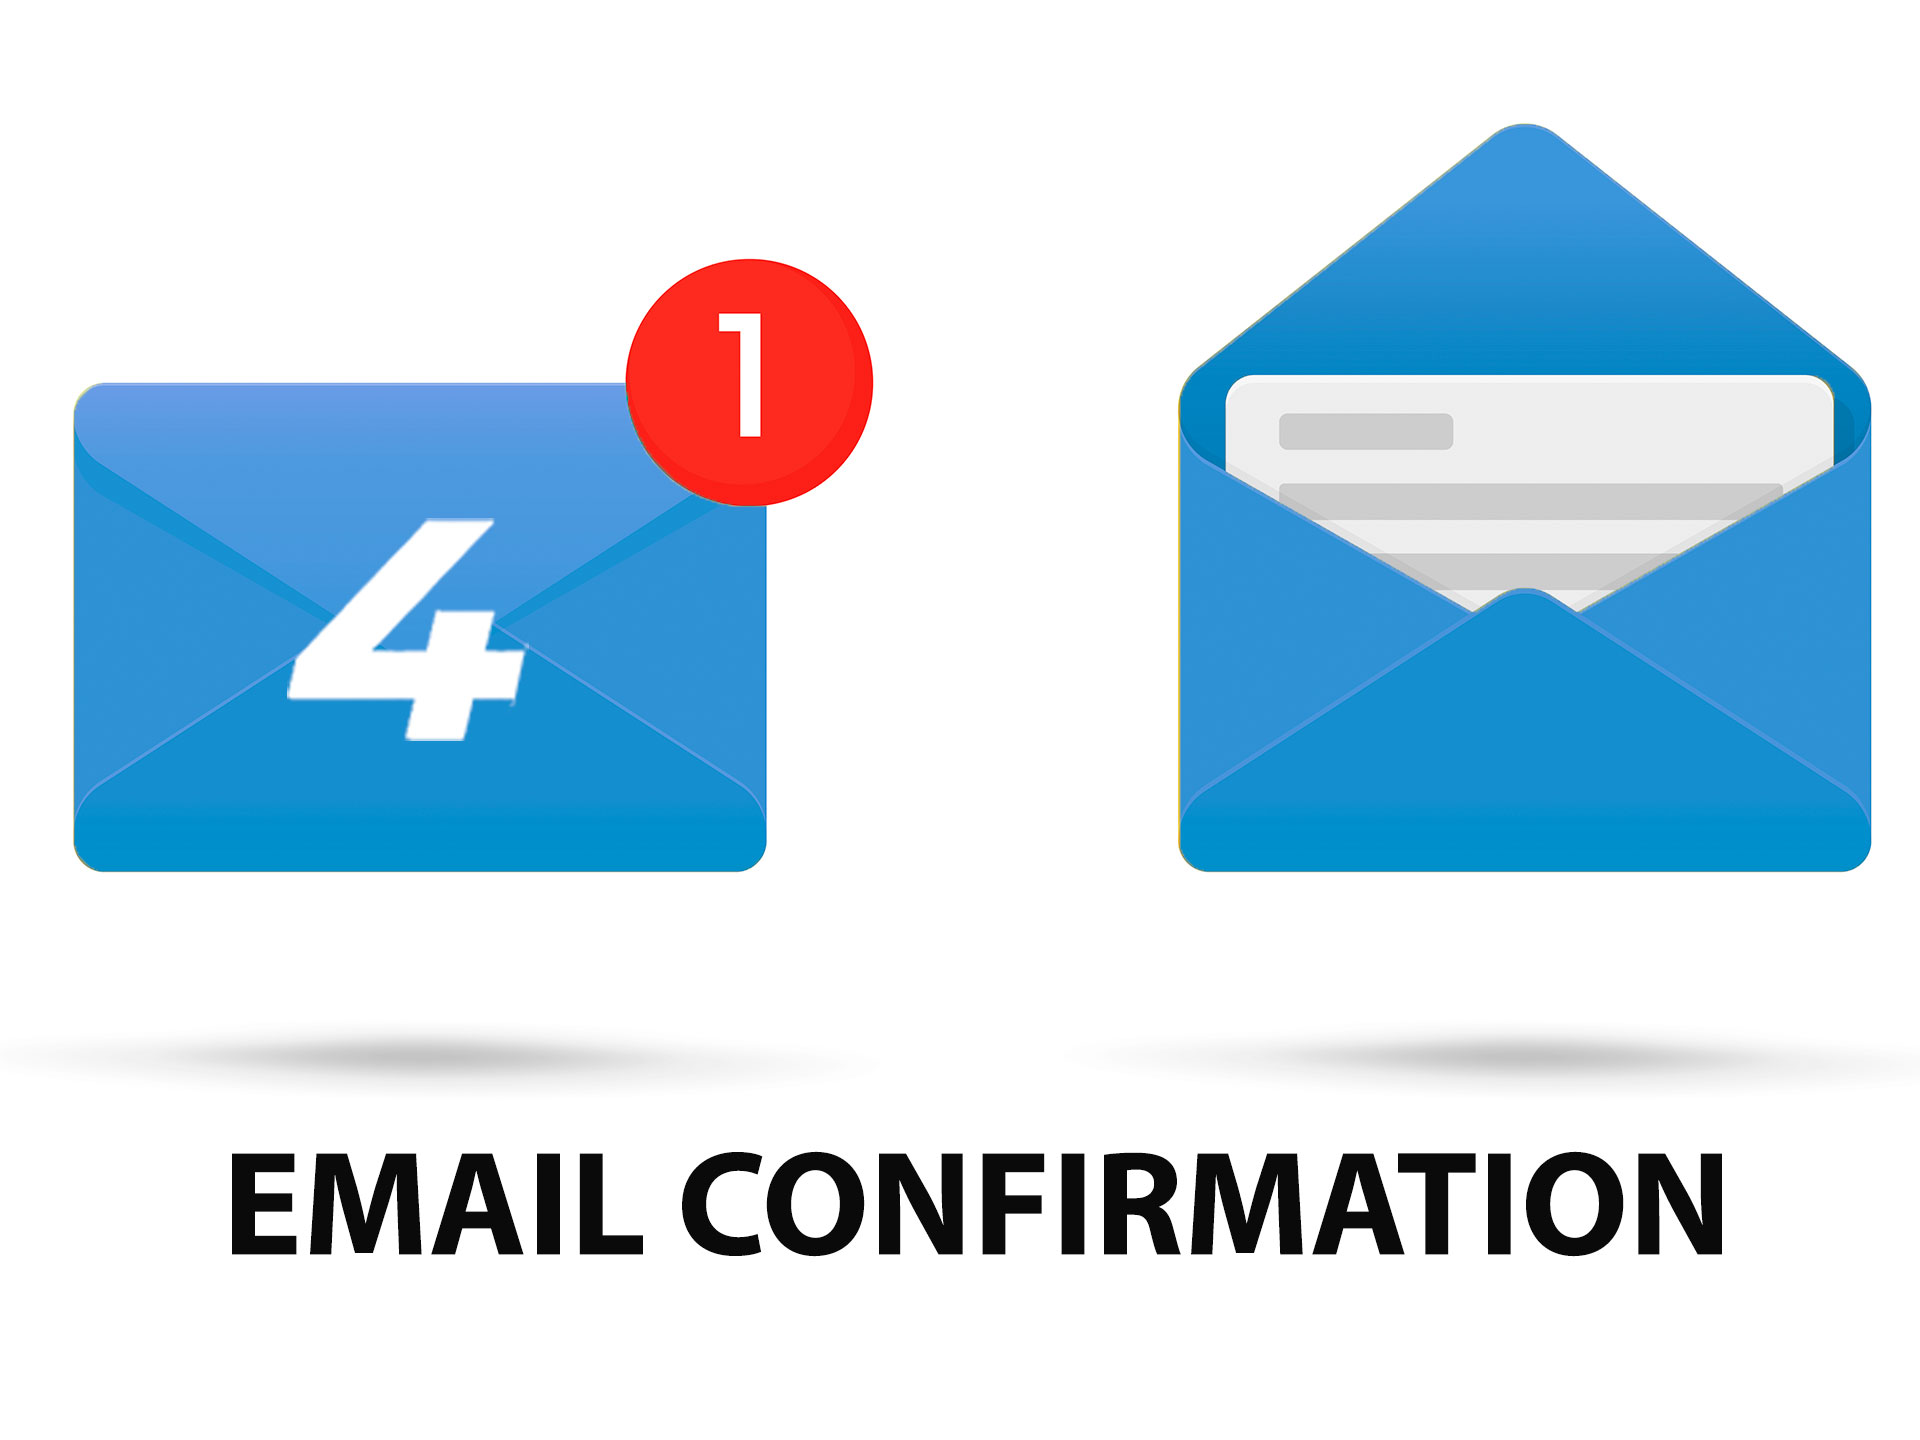 After confirming the email your registration will be completed.